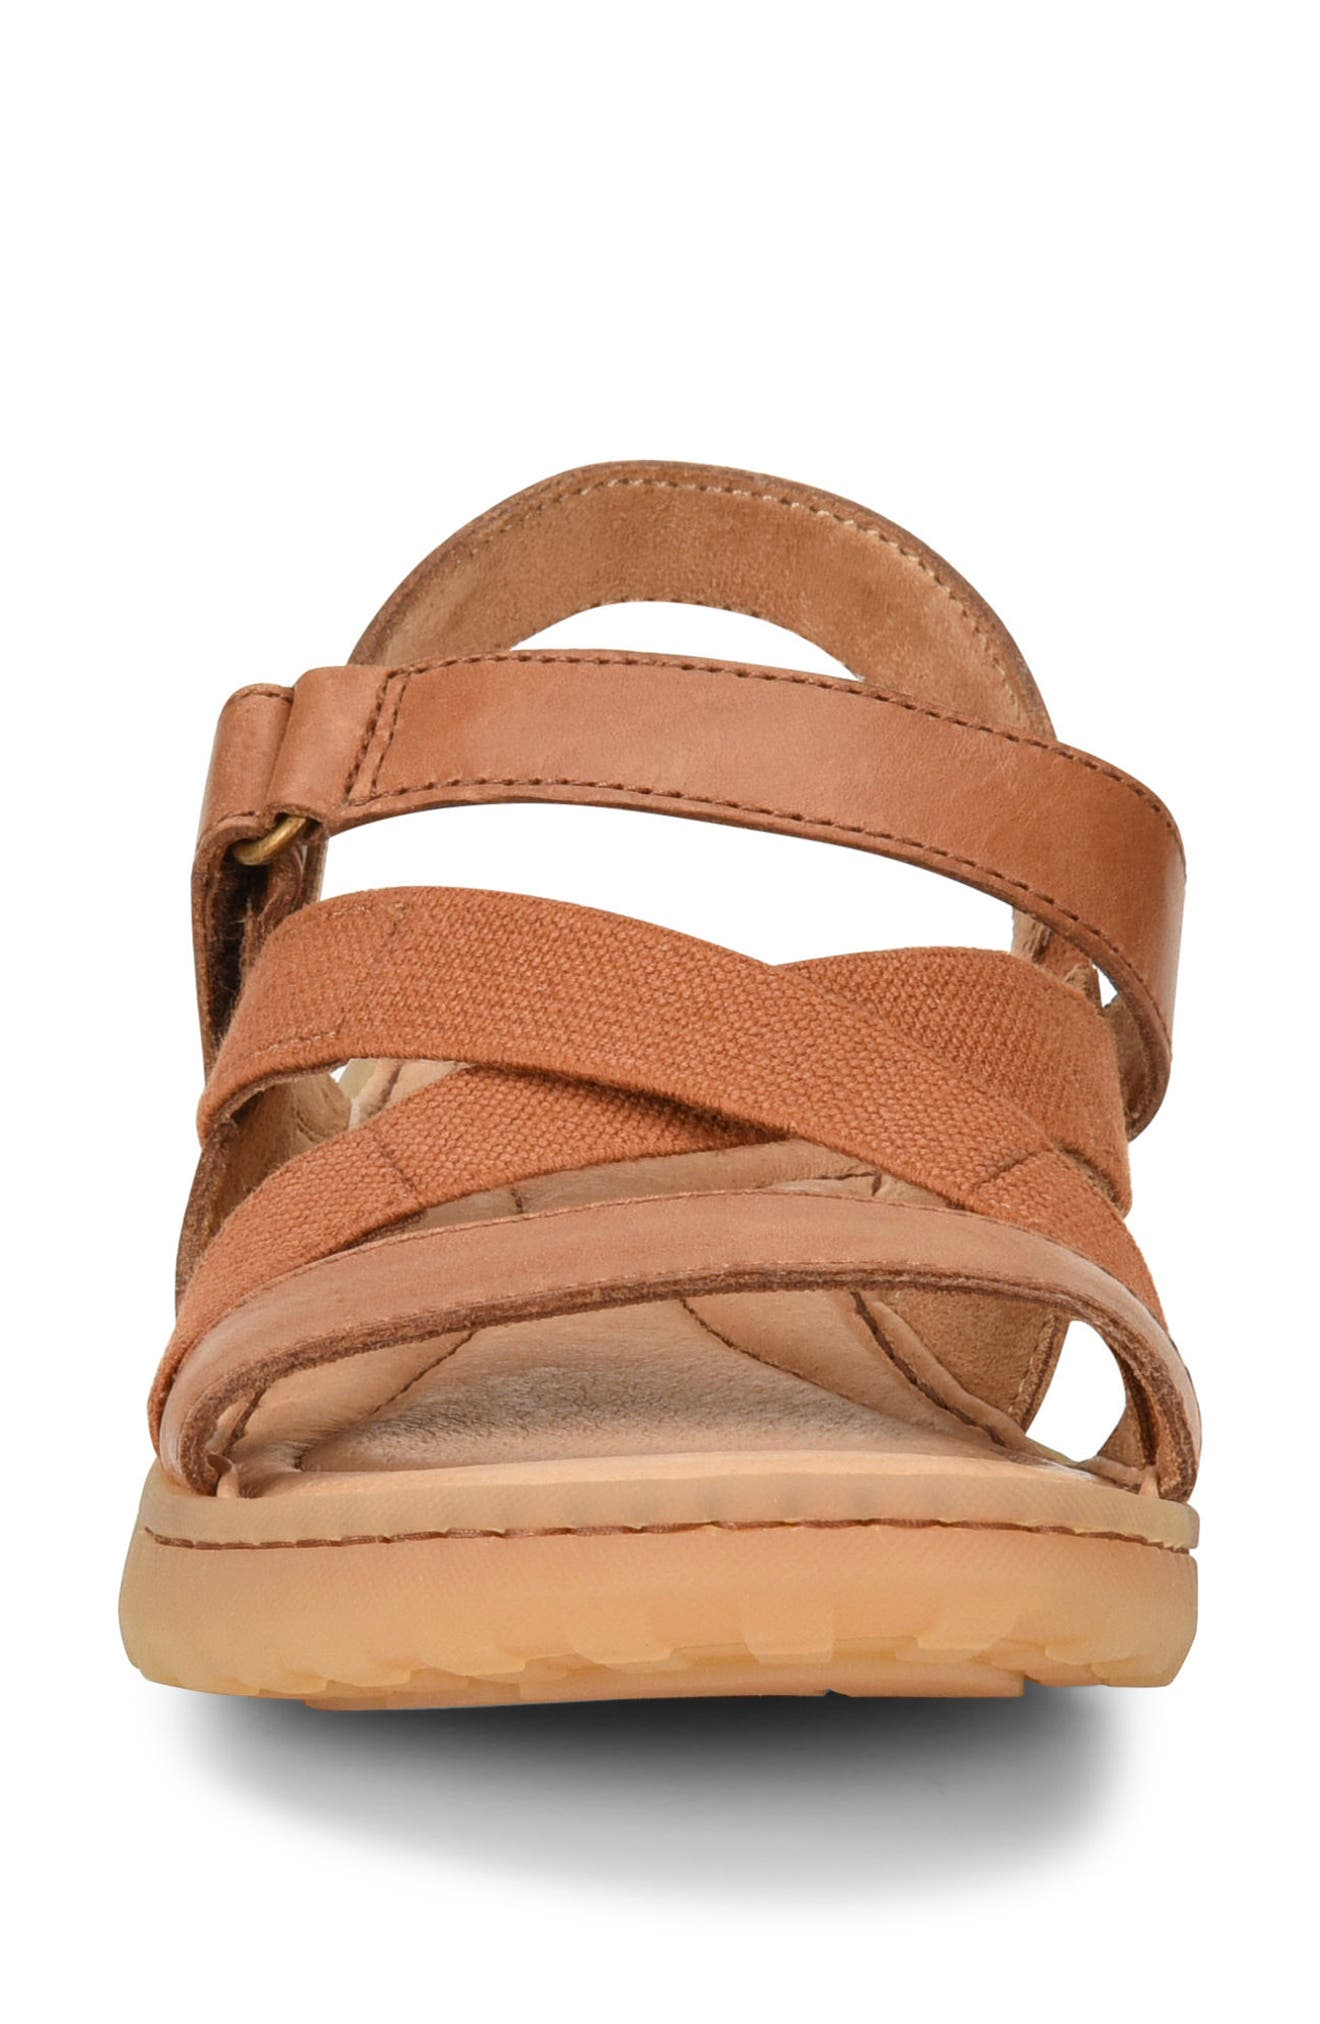 Manta Sandal,                             Alternate thumbnail 4, color,                             Brown Leather